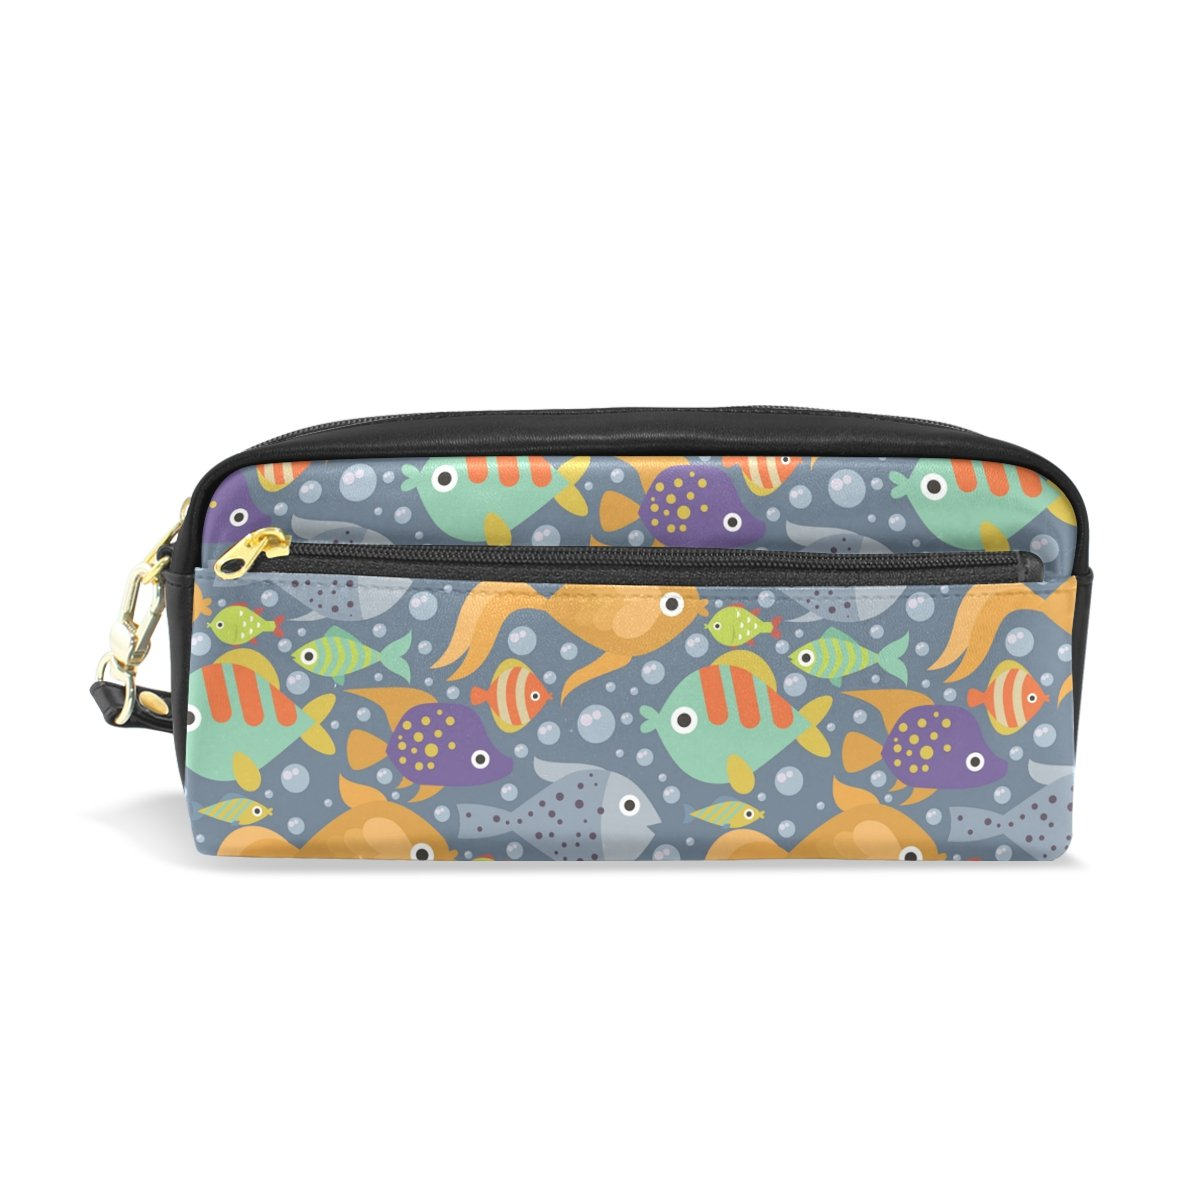 Pencil Case Pouch Storage Tropical Ocean Fish Stationery Cosmetic Makeup Wristlets Bag Zipper